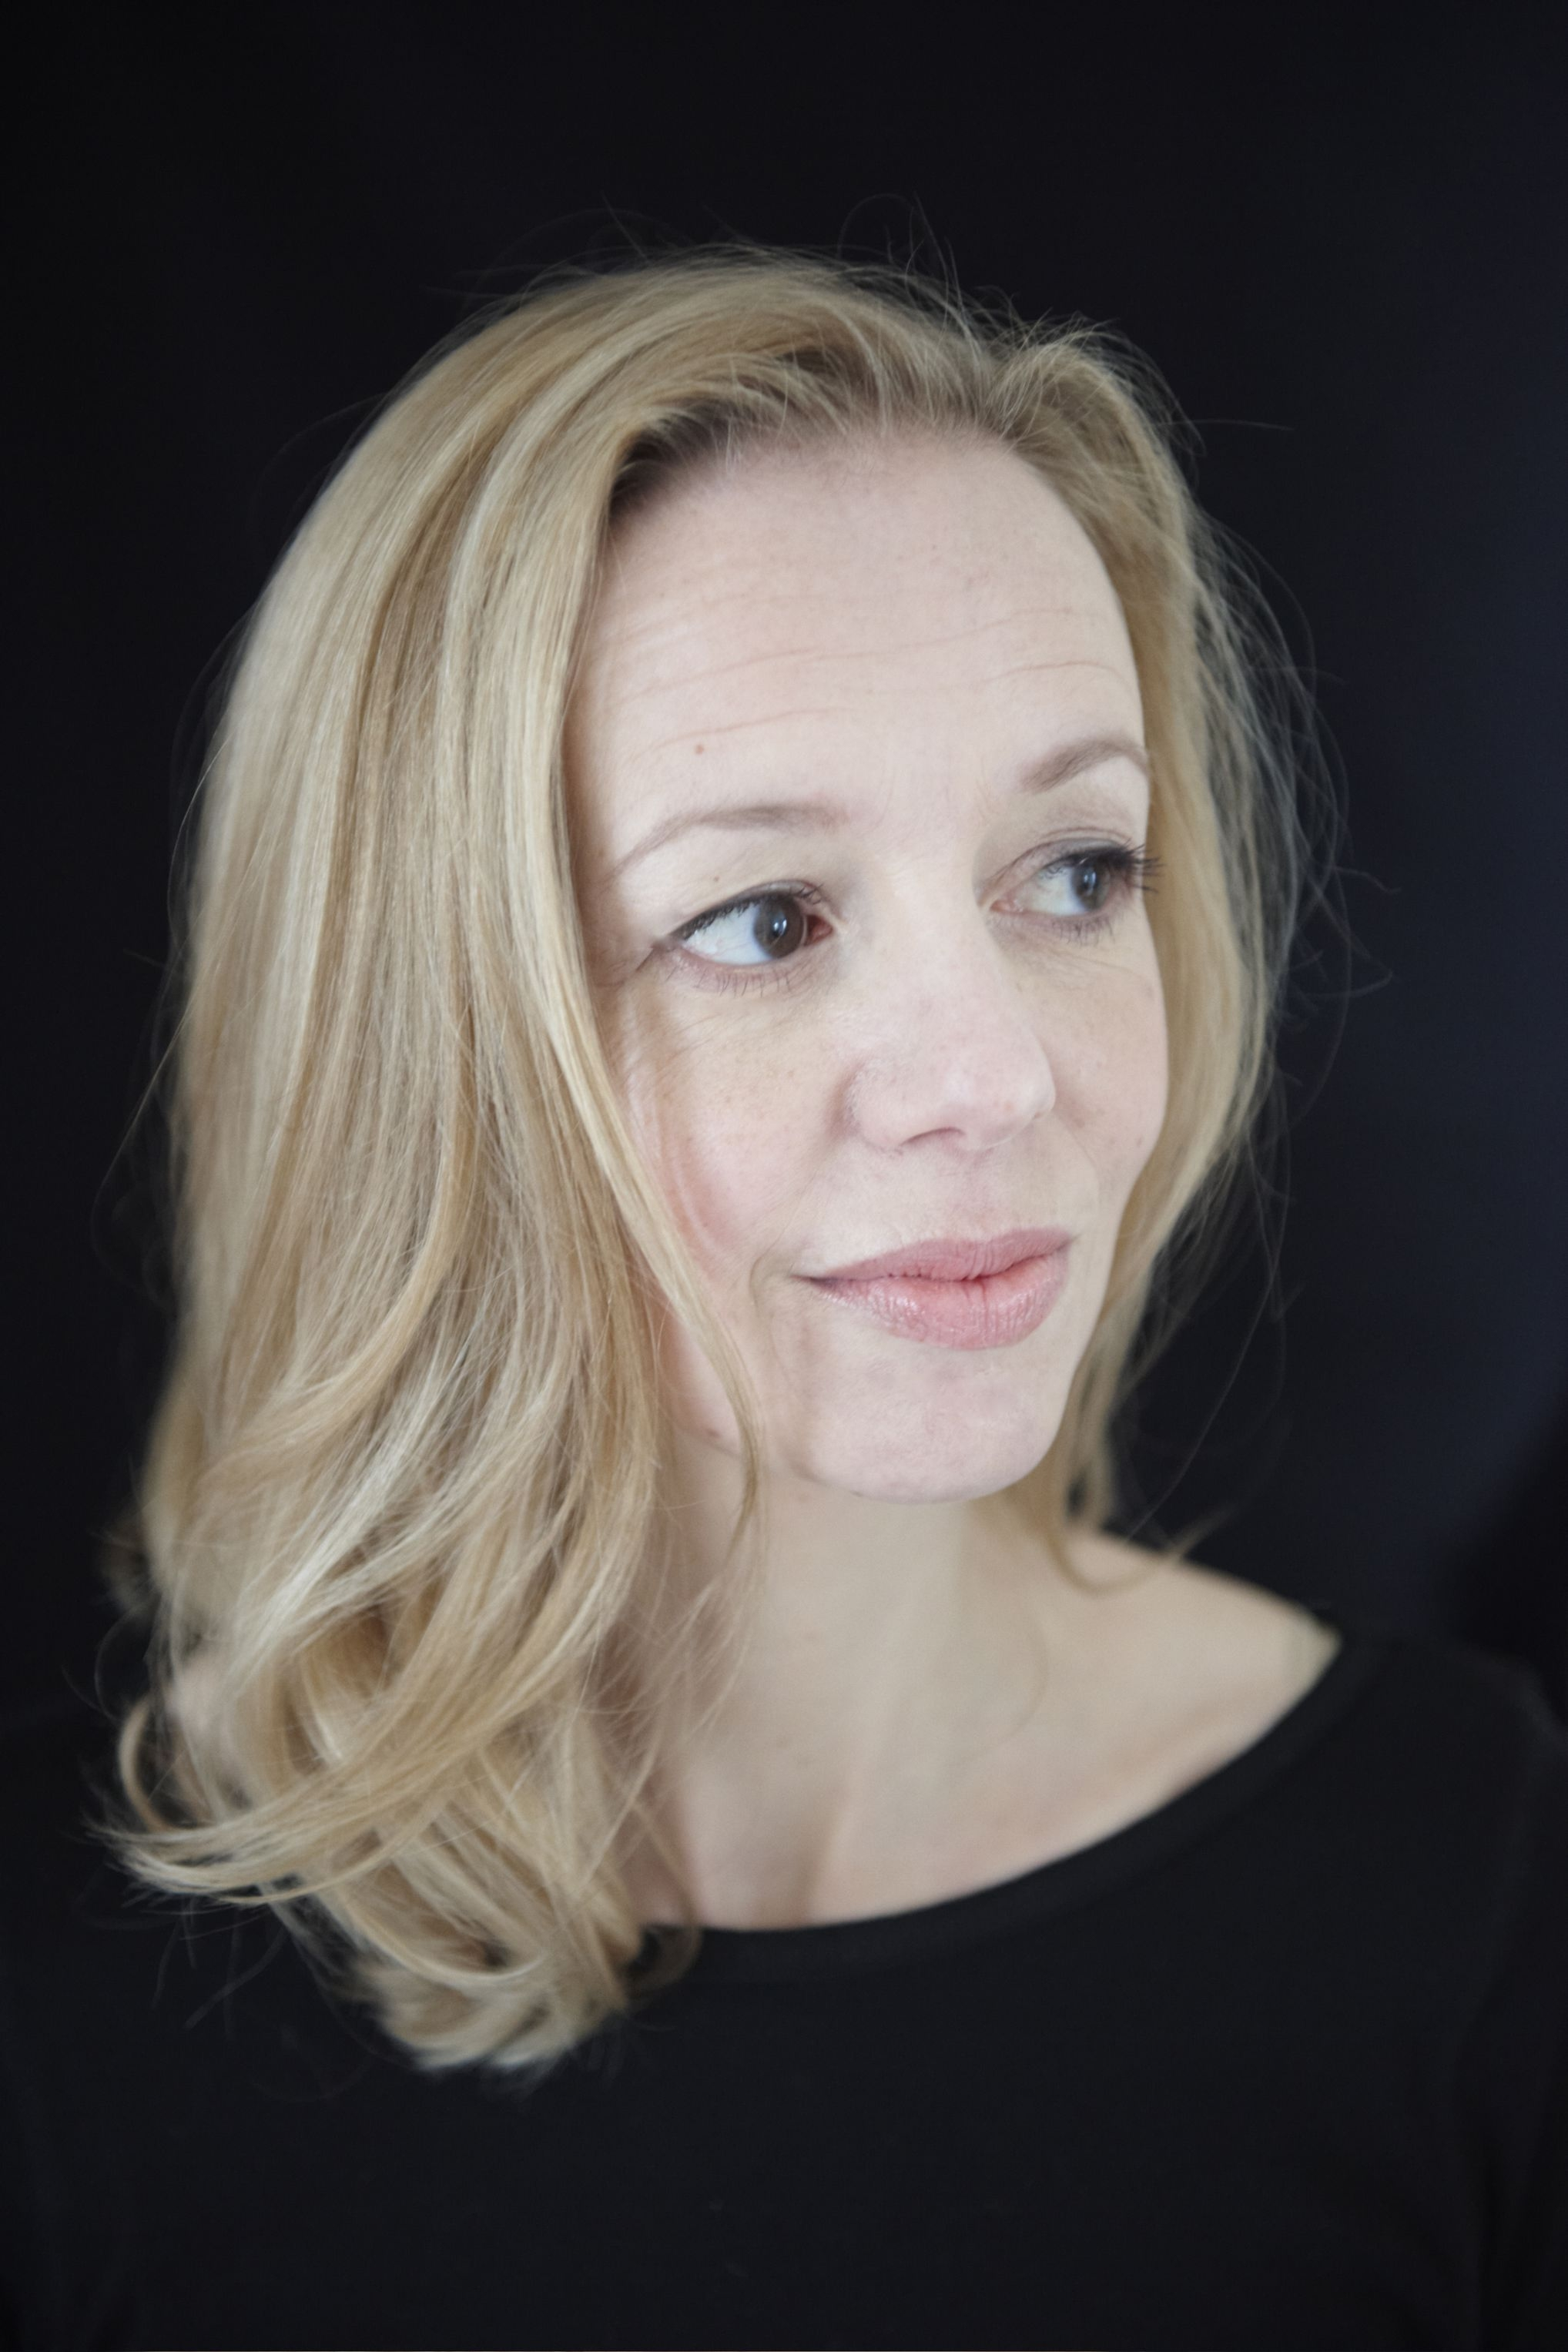 Rosamund Lupton Q&A: Rosamund Lupton, Author of Afterwards